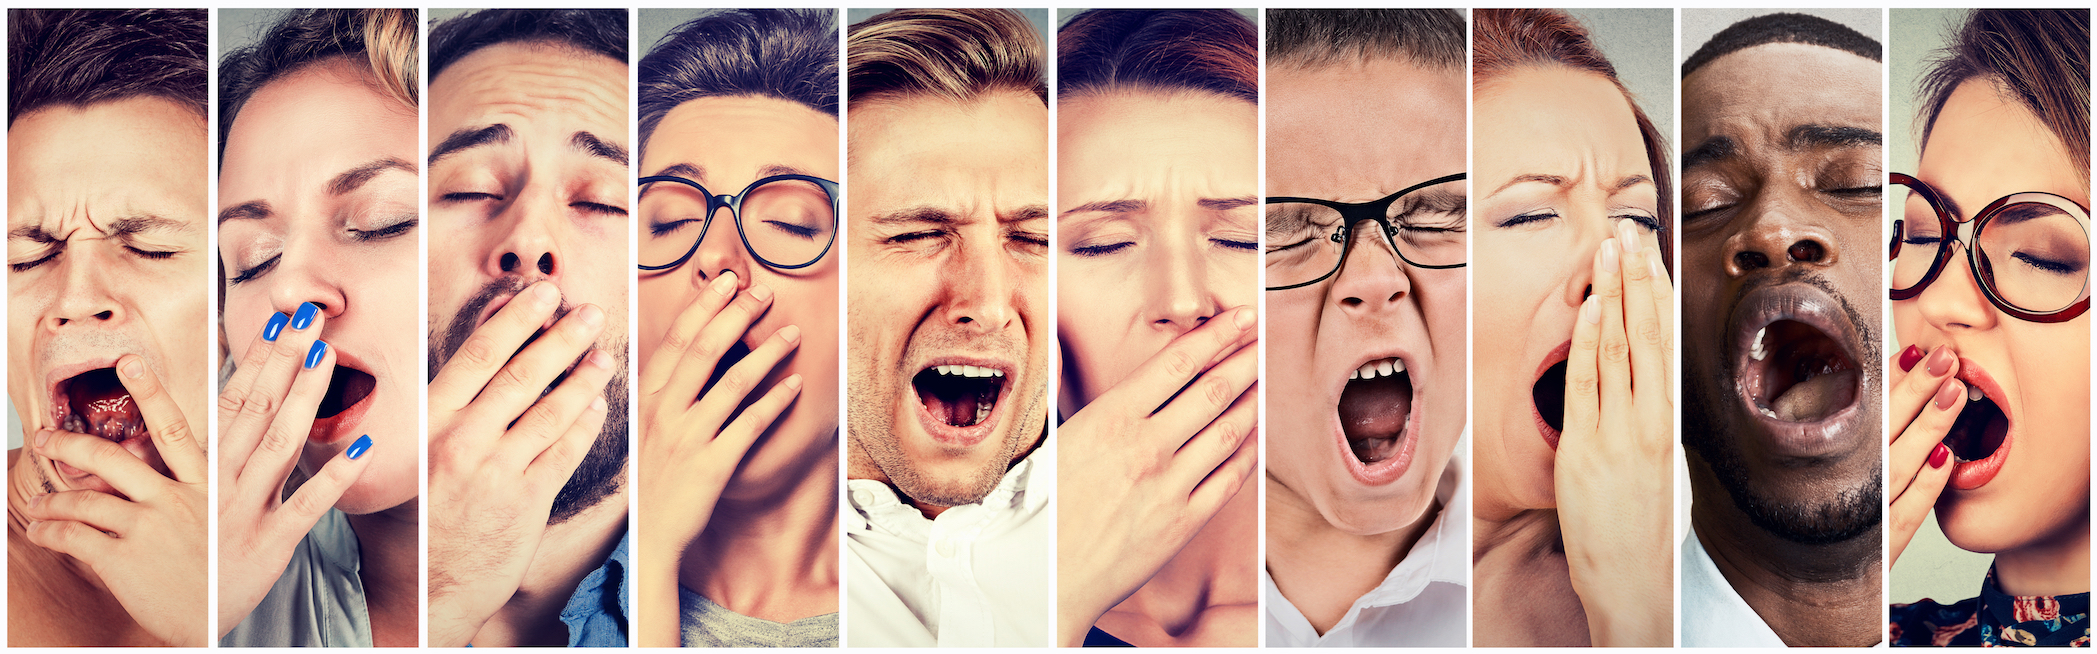 According to new research, yawning is a common form of echophenomena, or the automatic imitation of another person's words or actions.